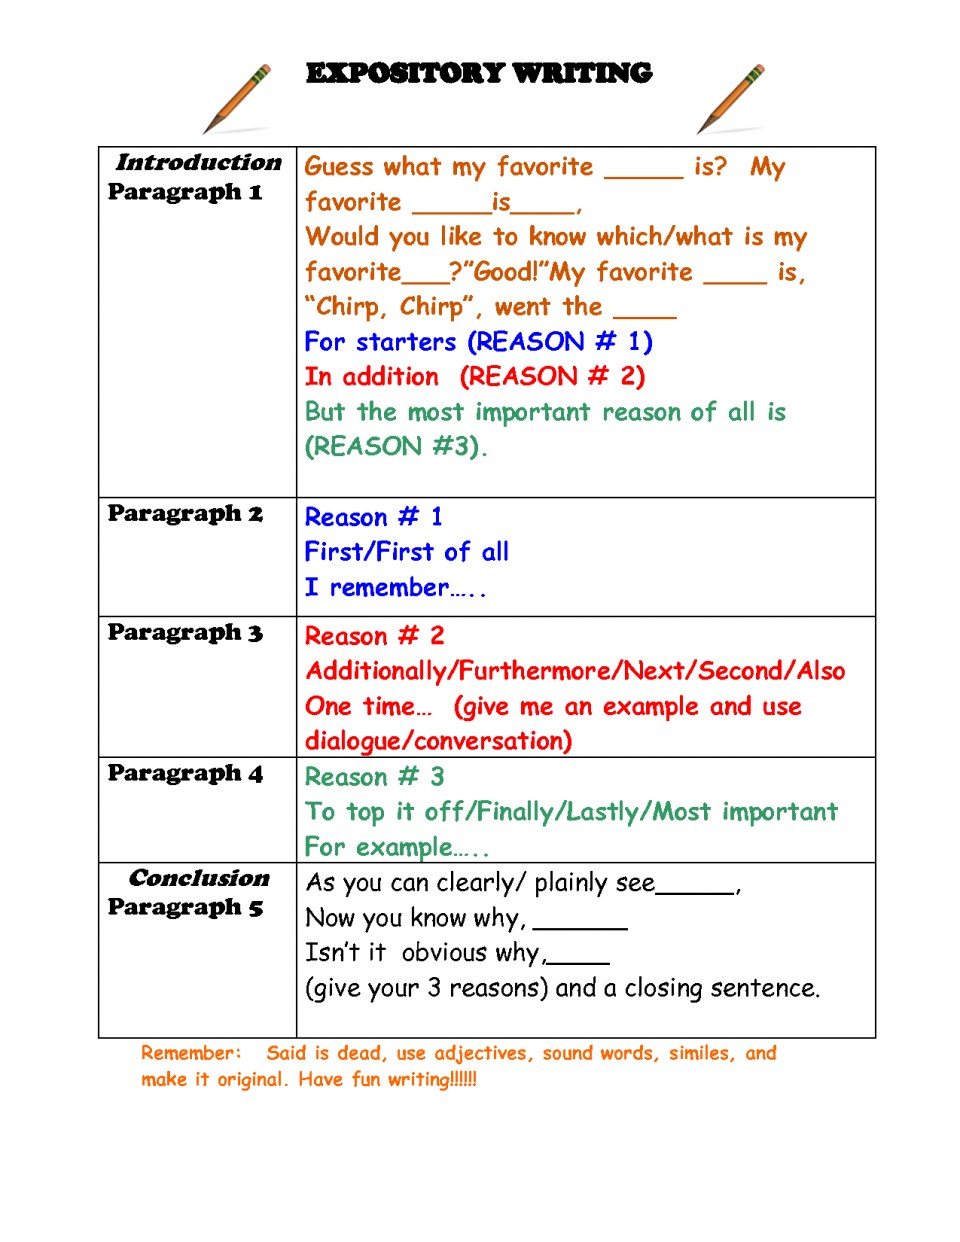 008 Expository Essay Format Fascinating Mla Example Introduction Examples Sample Apa 960